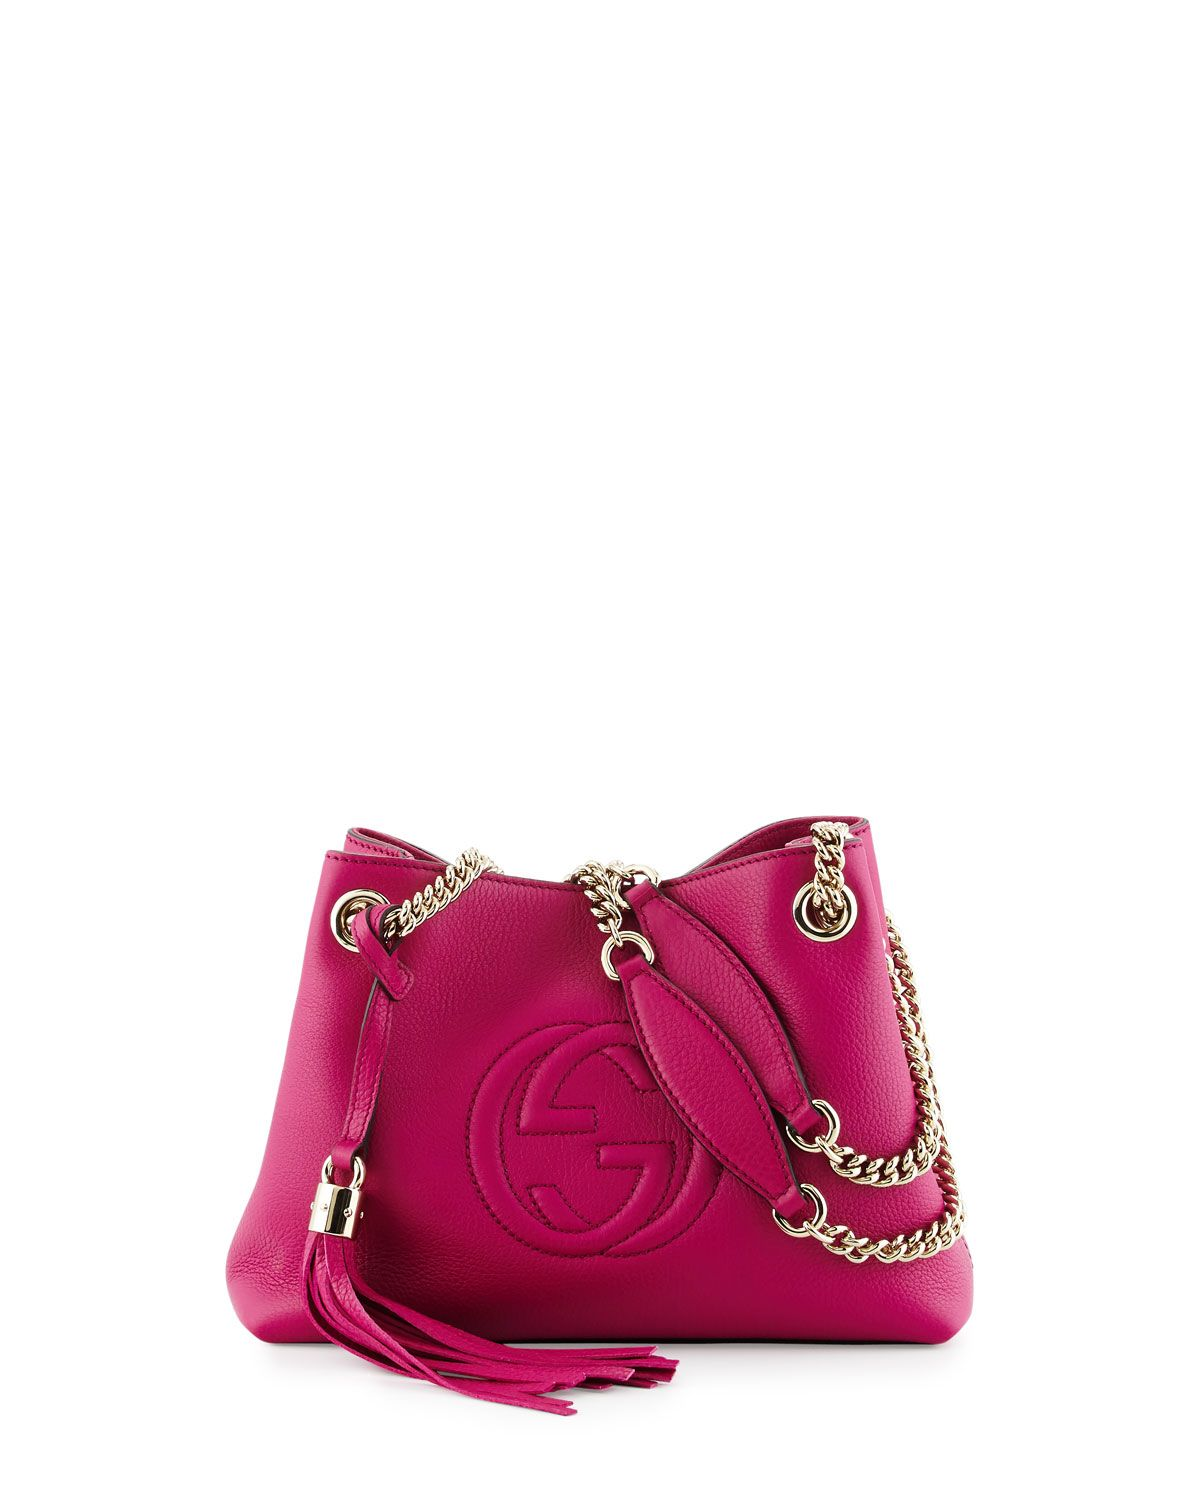 ba6eaa52094 Soho Small Leather Tote Bag w  Chain Straps Bright Pink